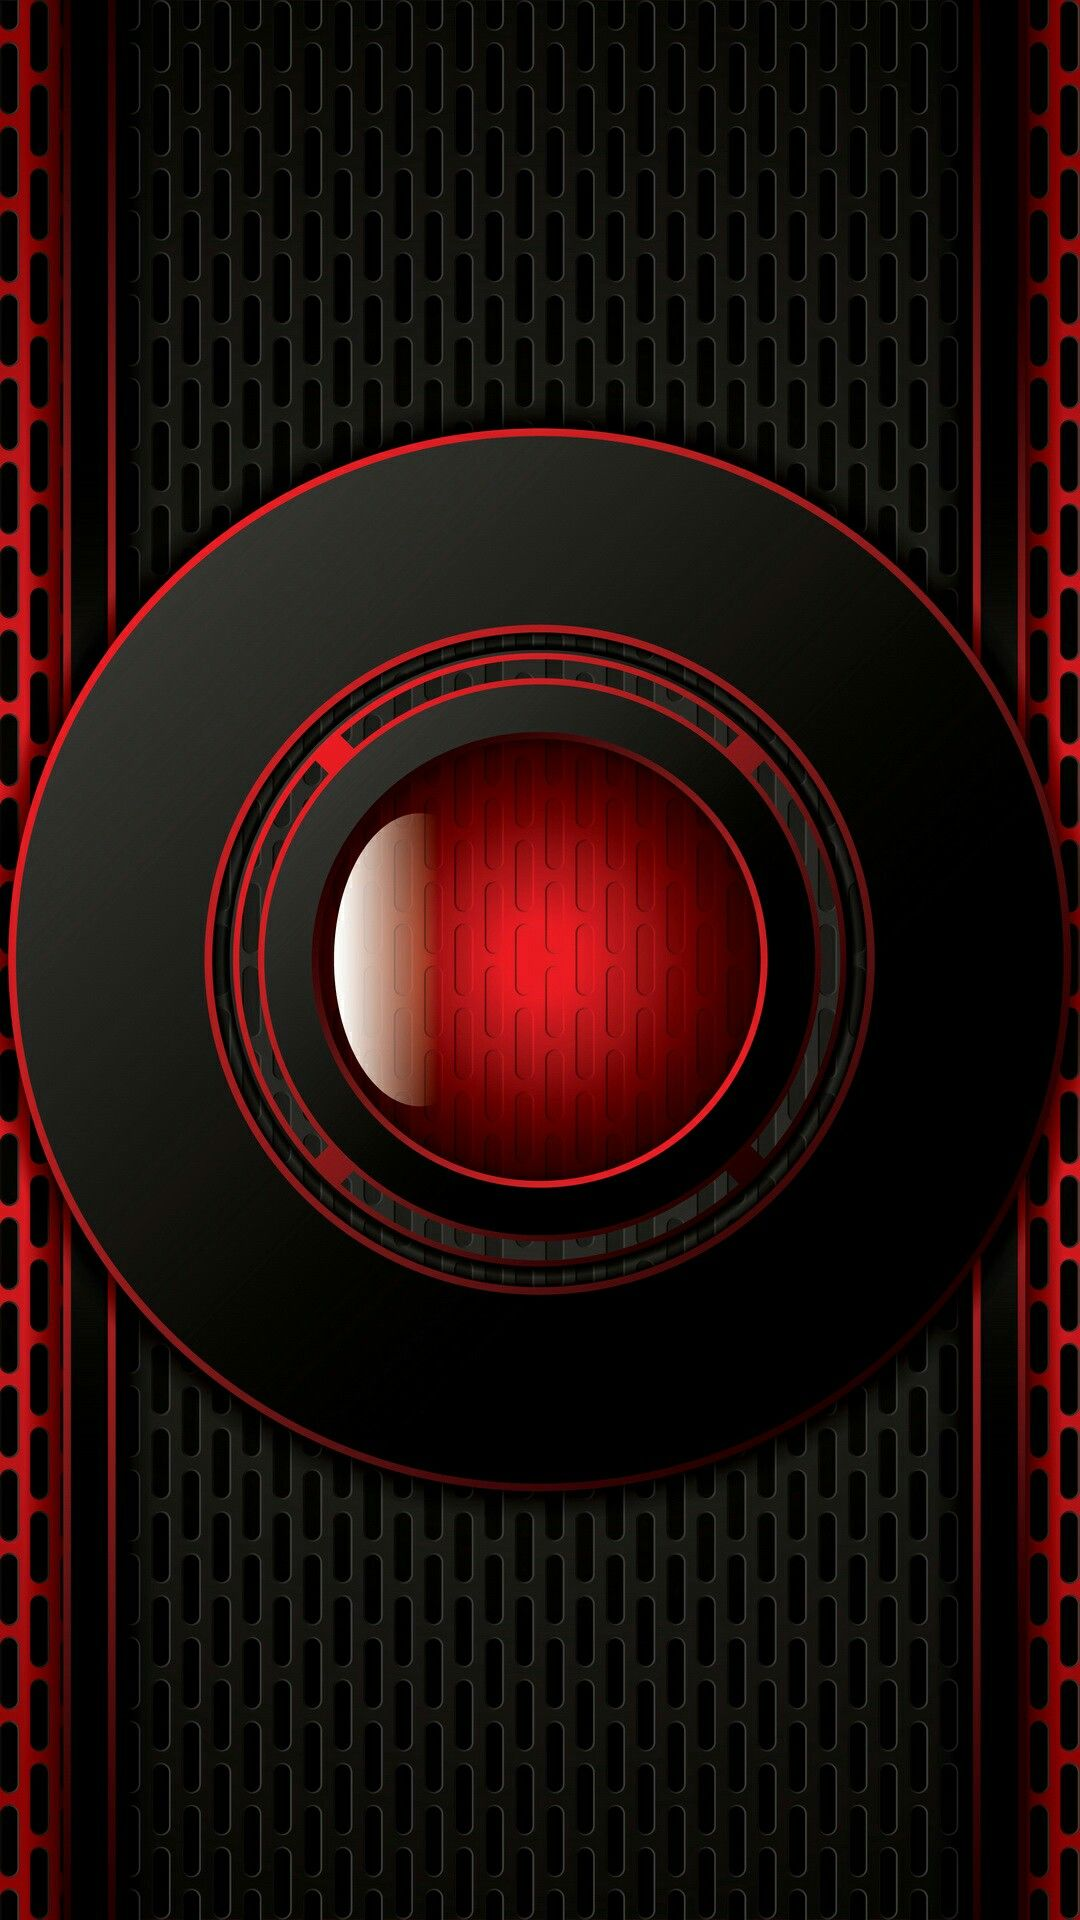 Black and Red Wallpaper | Red wallpaper, Android wallpaper ...